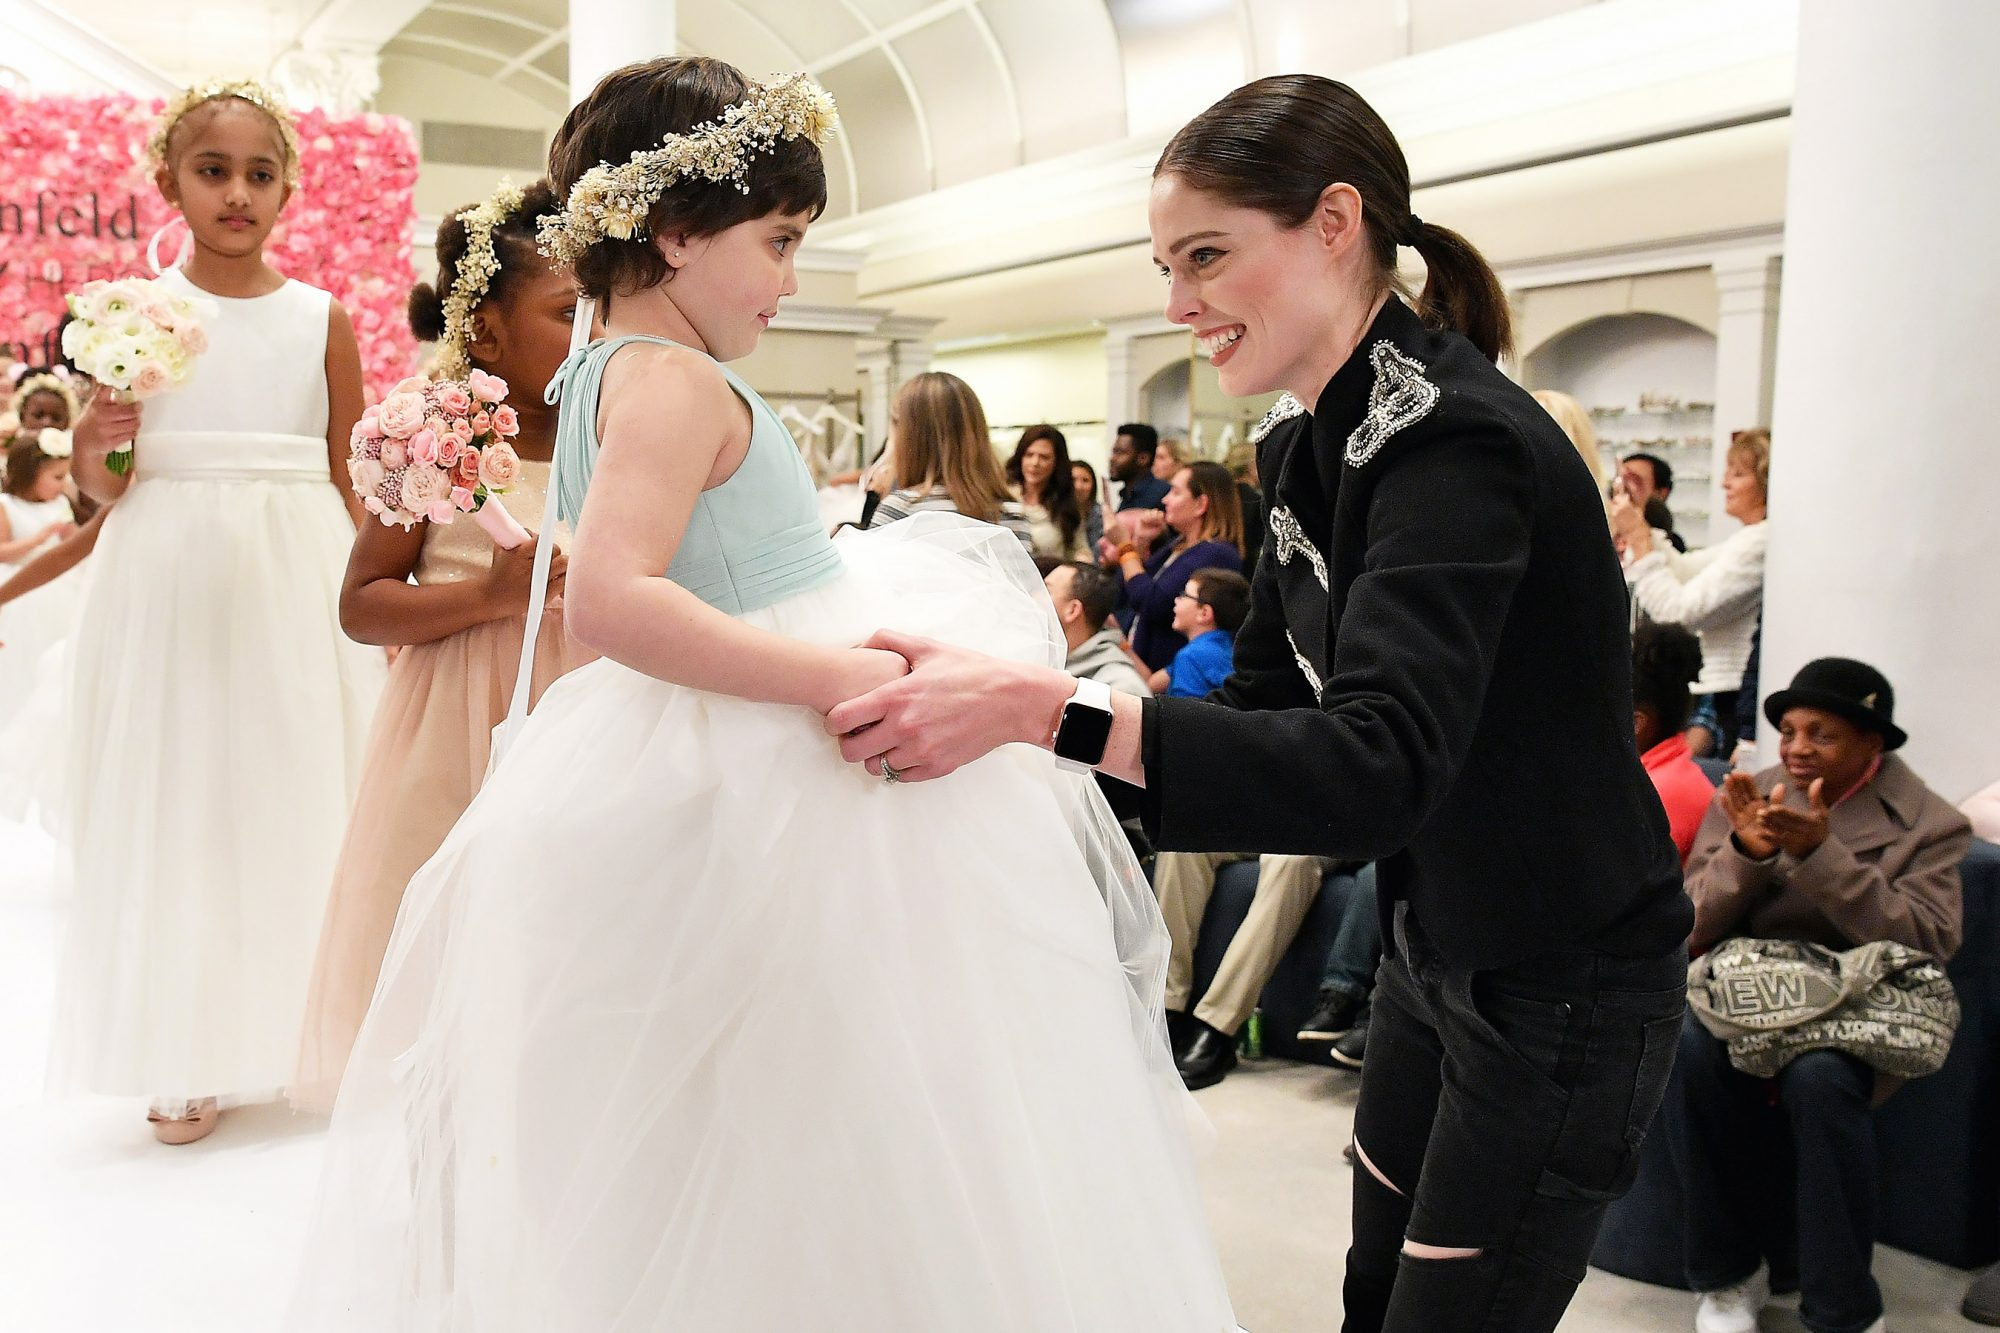 Runway Heroes To Benefit Childhood Cancer Research